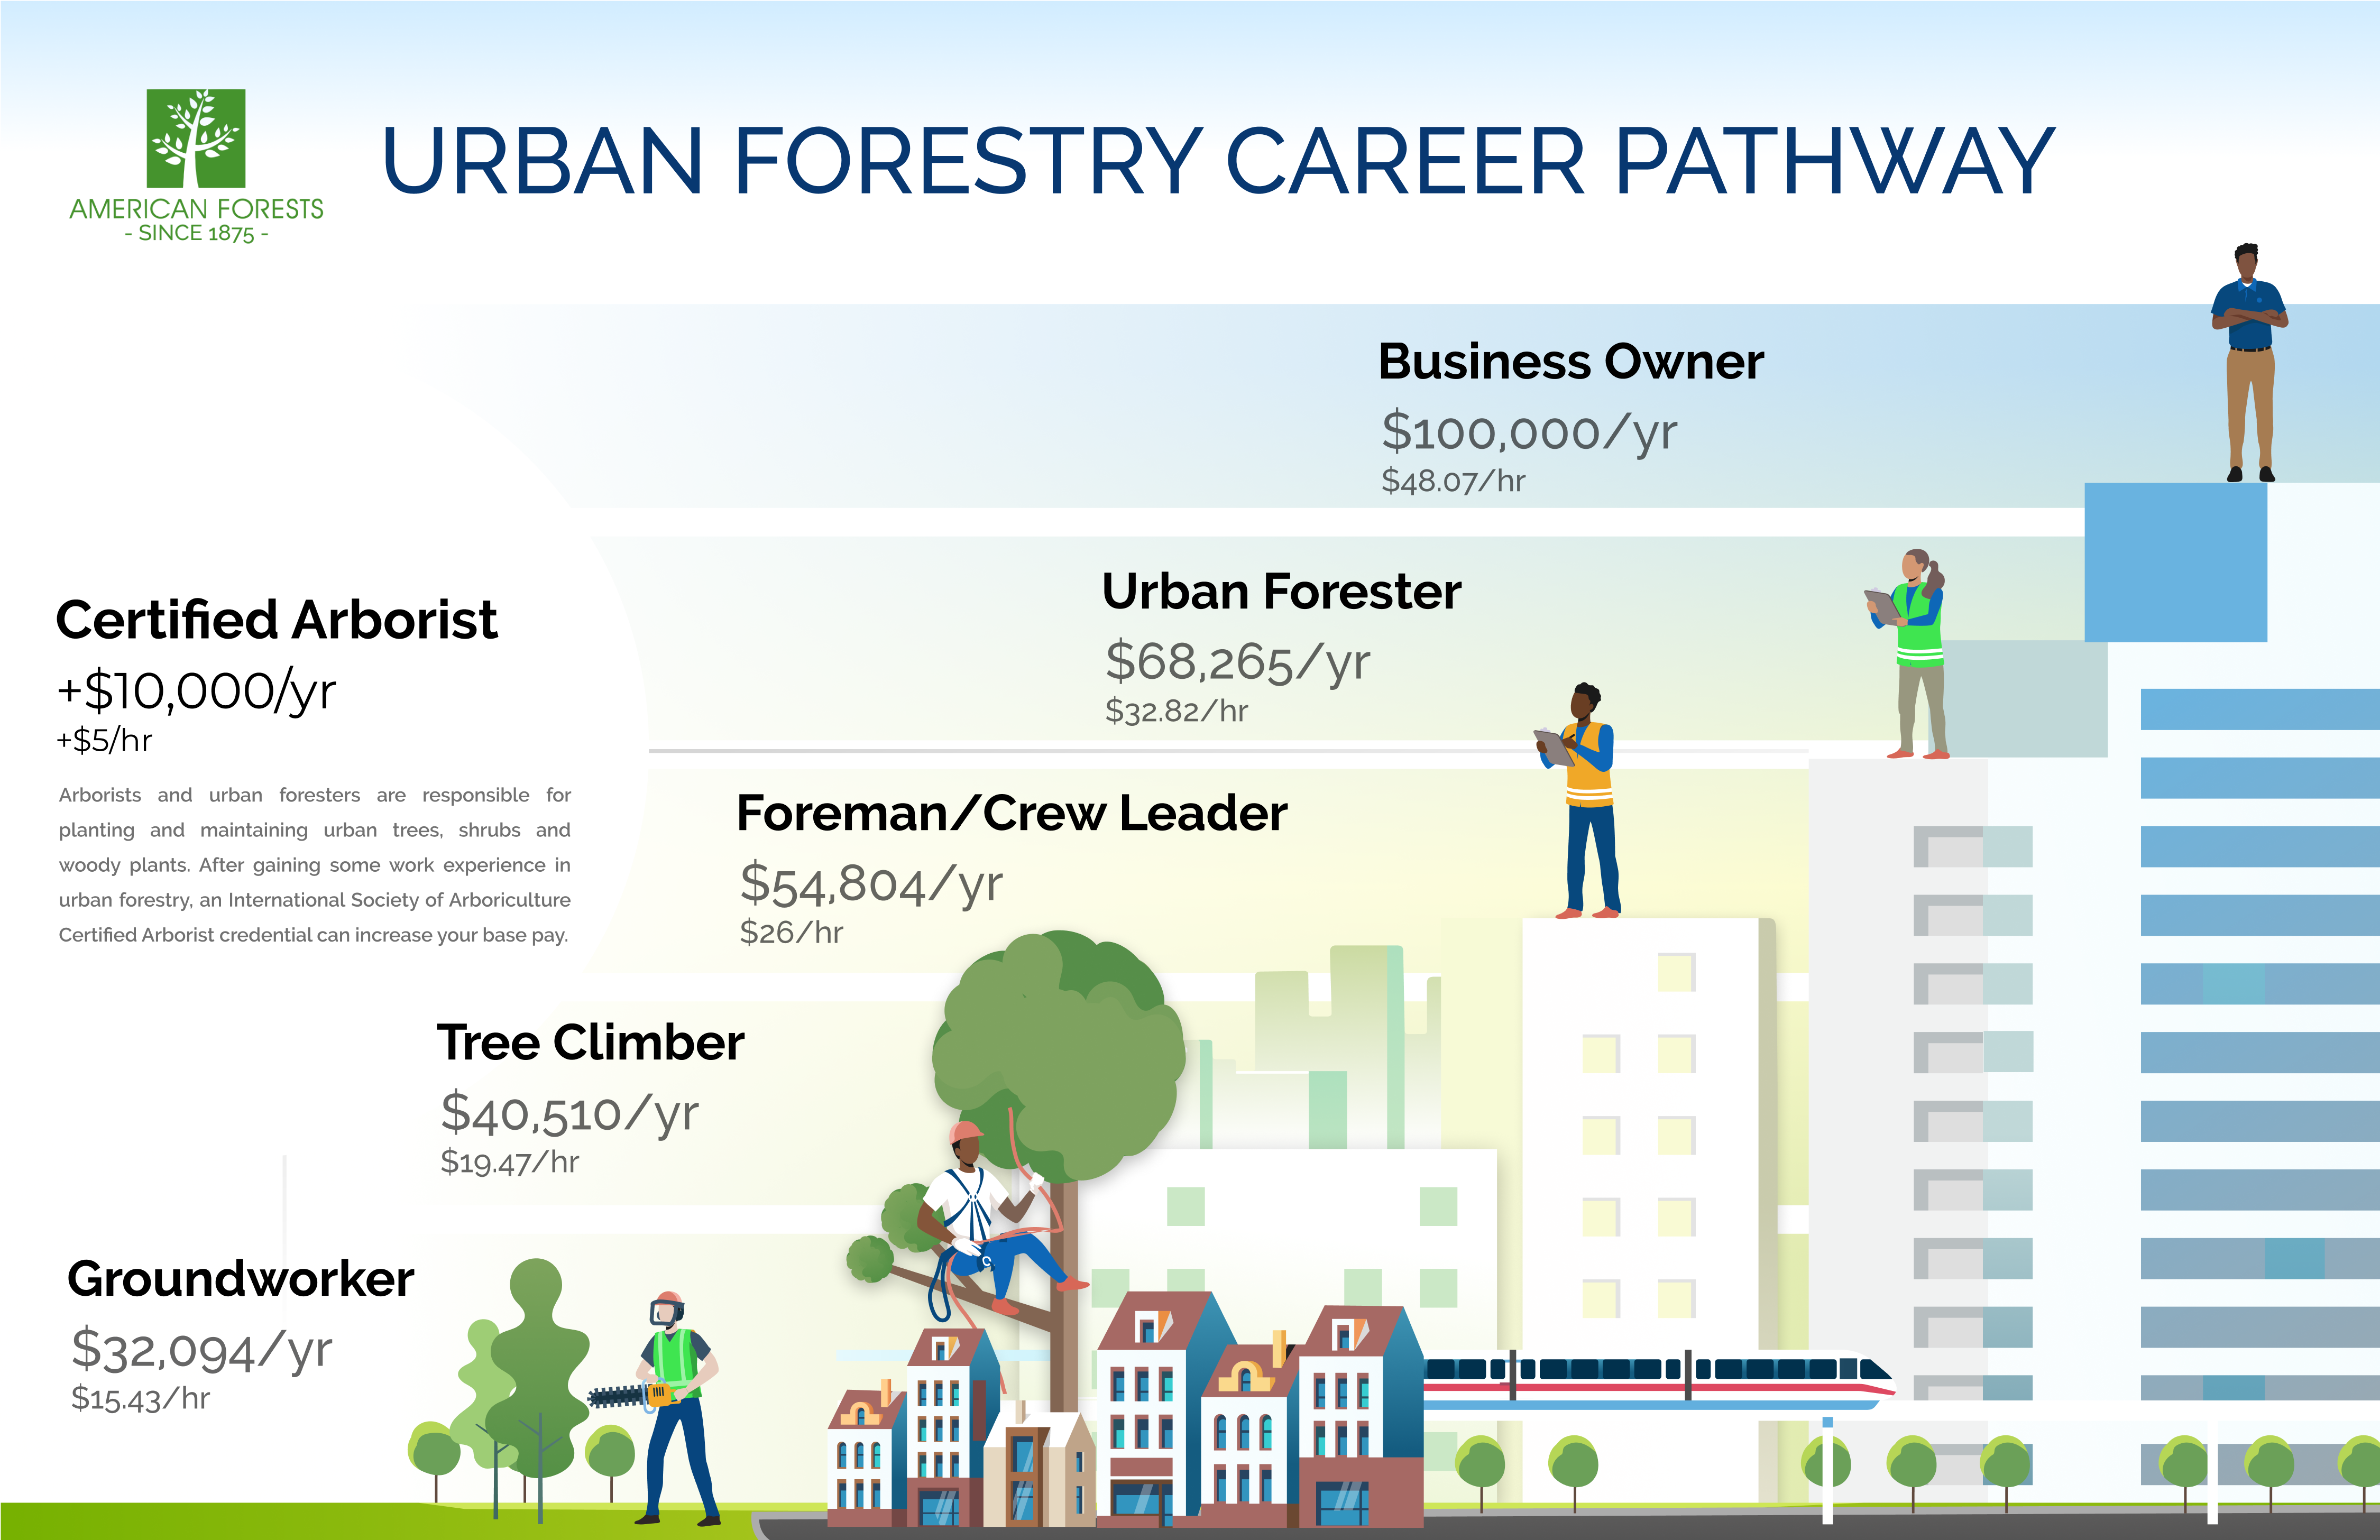 Careers in Urban Forestry